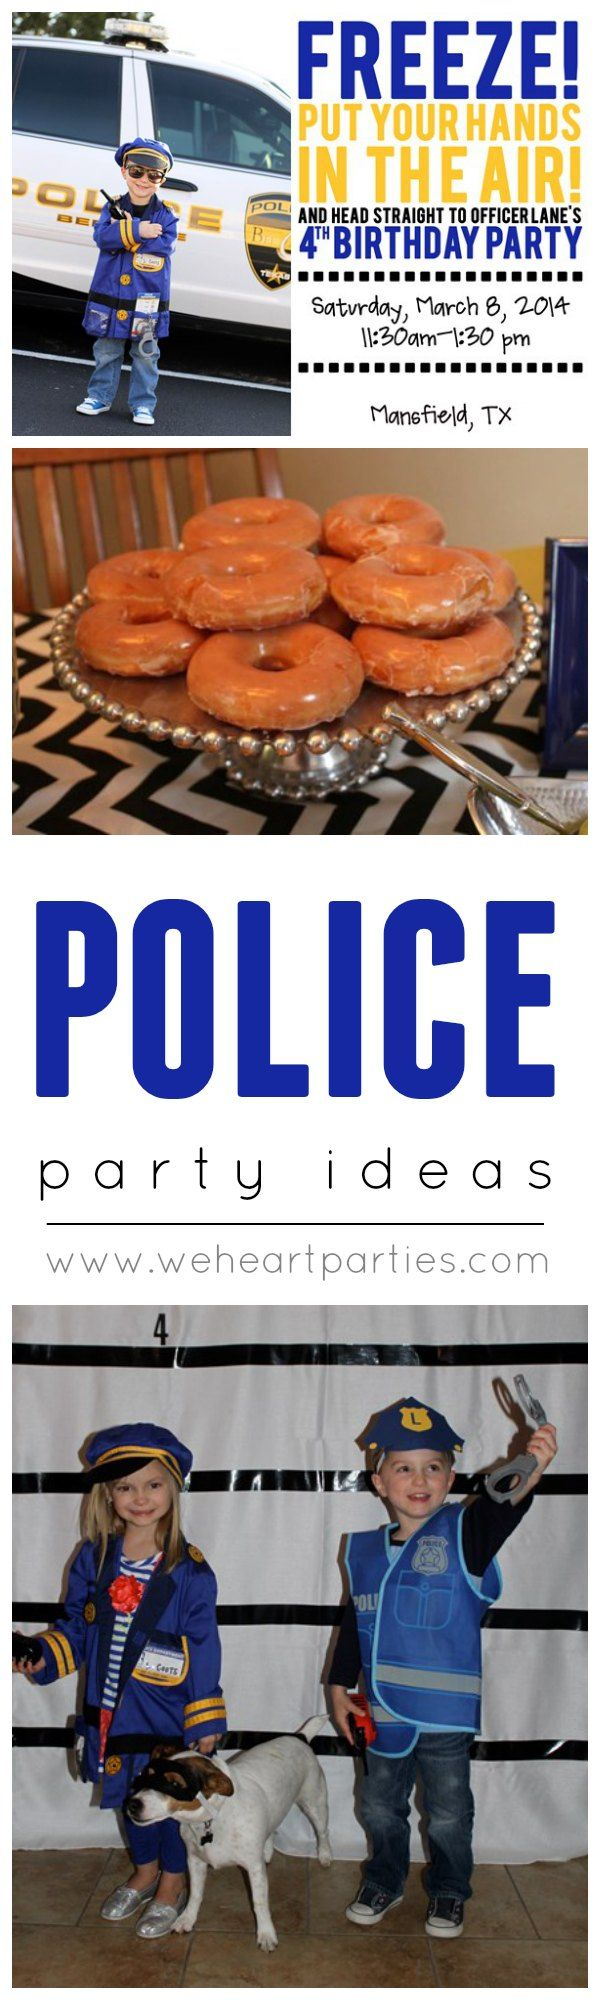 Police Office Birthday Bash - great party ideas for a police car lover!